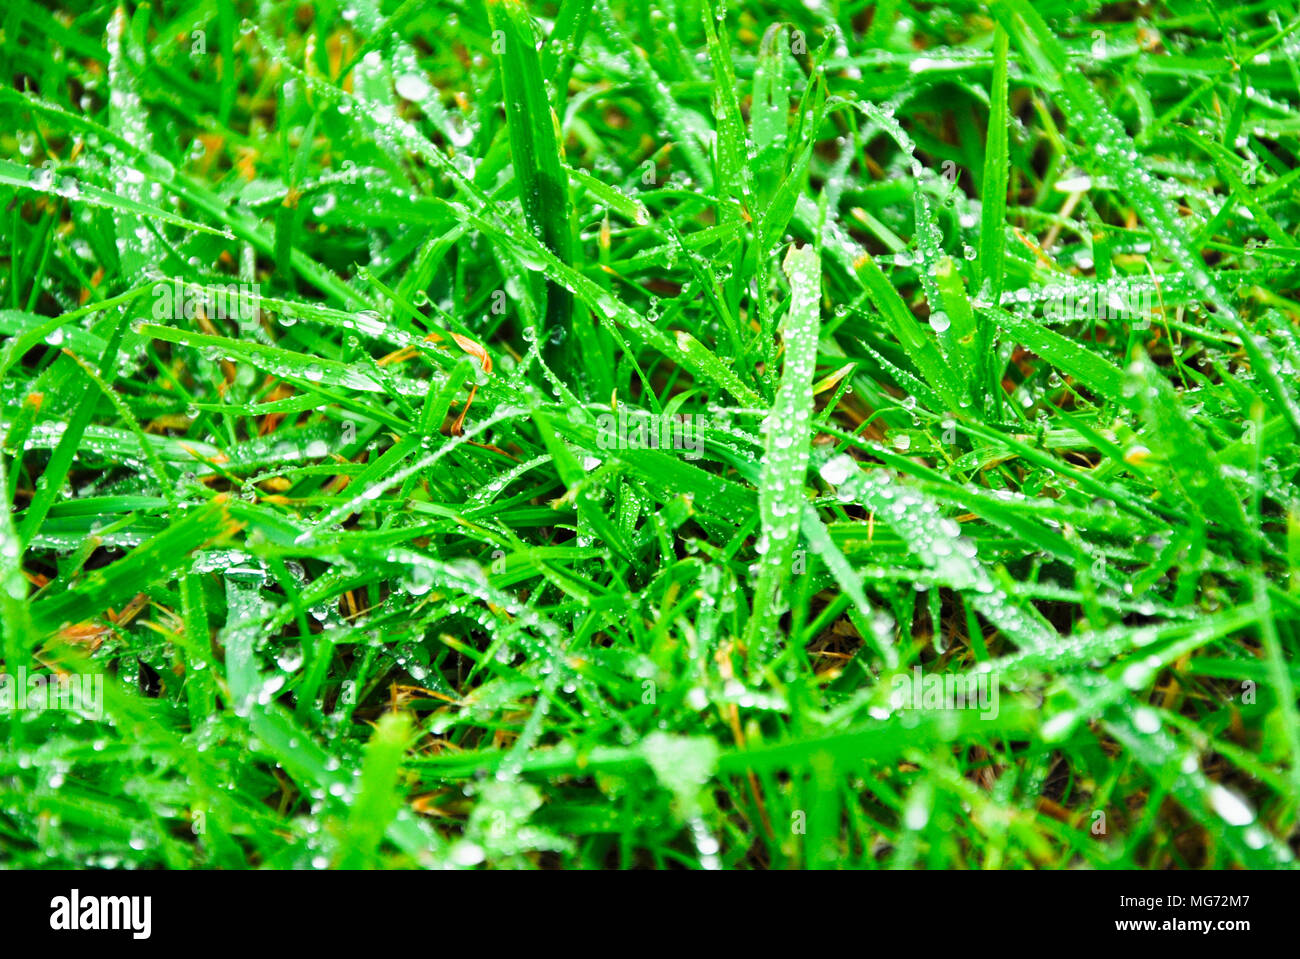 UK Weather: A Saturated Lawn In A Portland Garden, After A Very Wet Day For  Dorset Credit: Stuart Fretwell/Alamy Live News